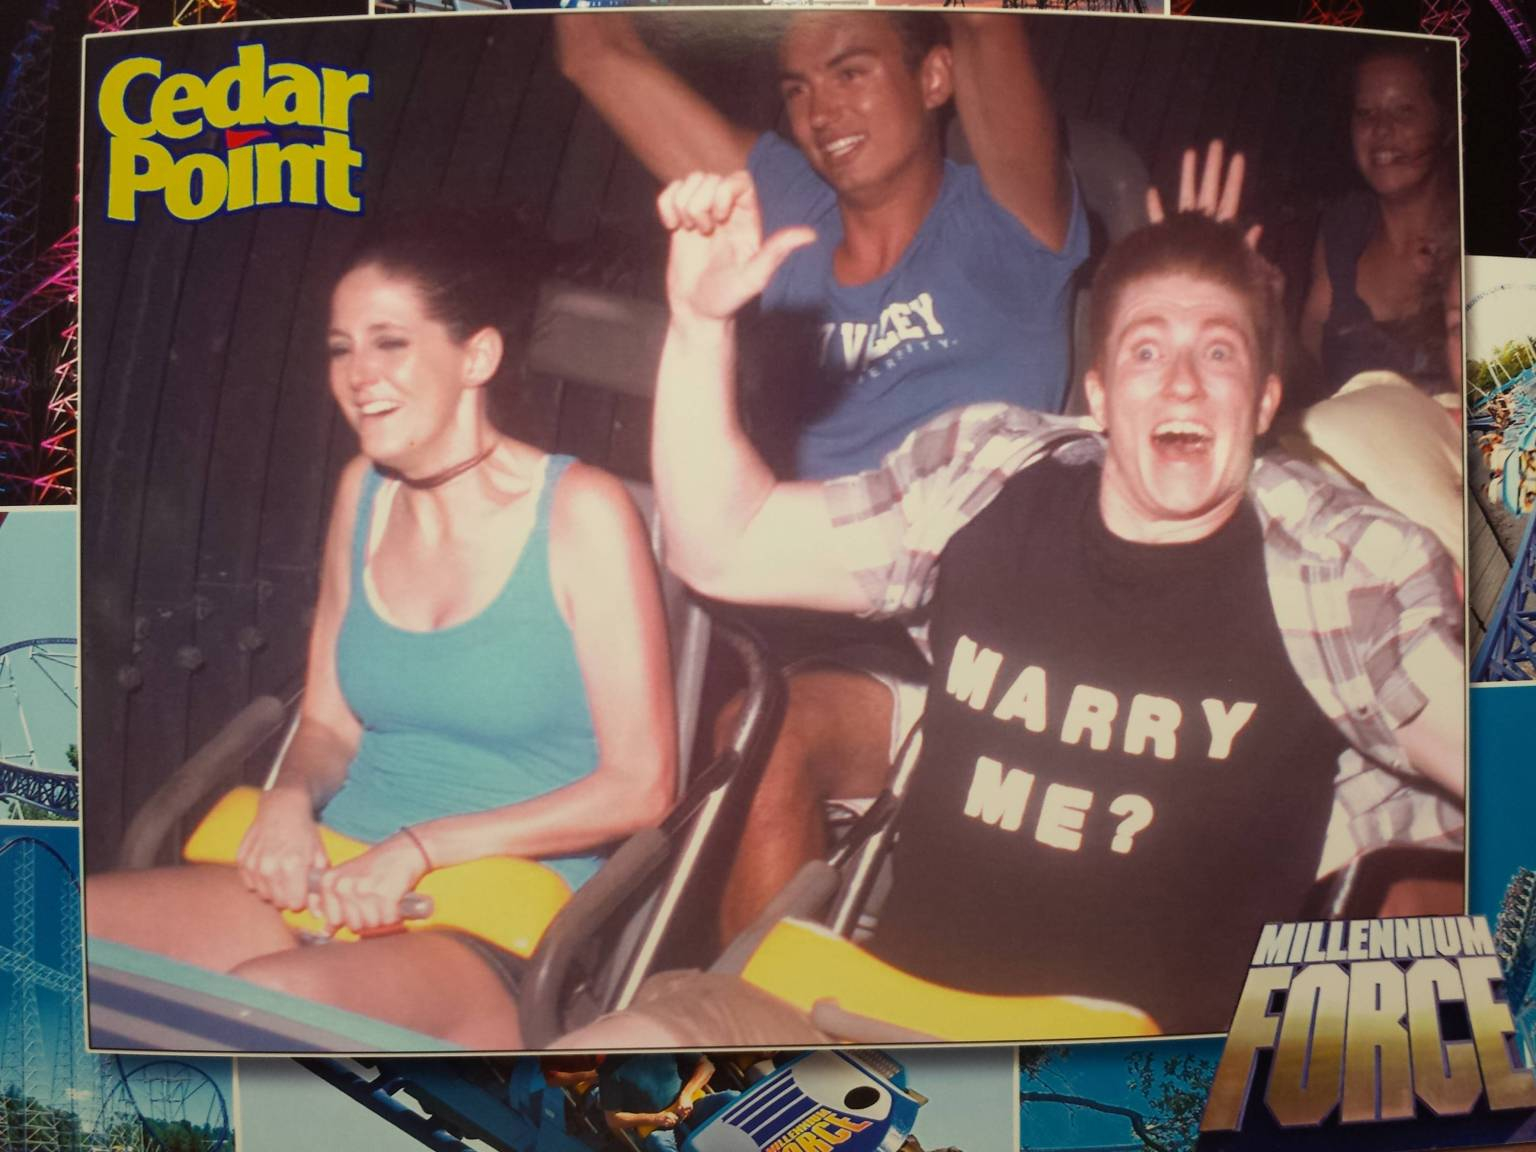 Girls flashing on roller coaster Maenner